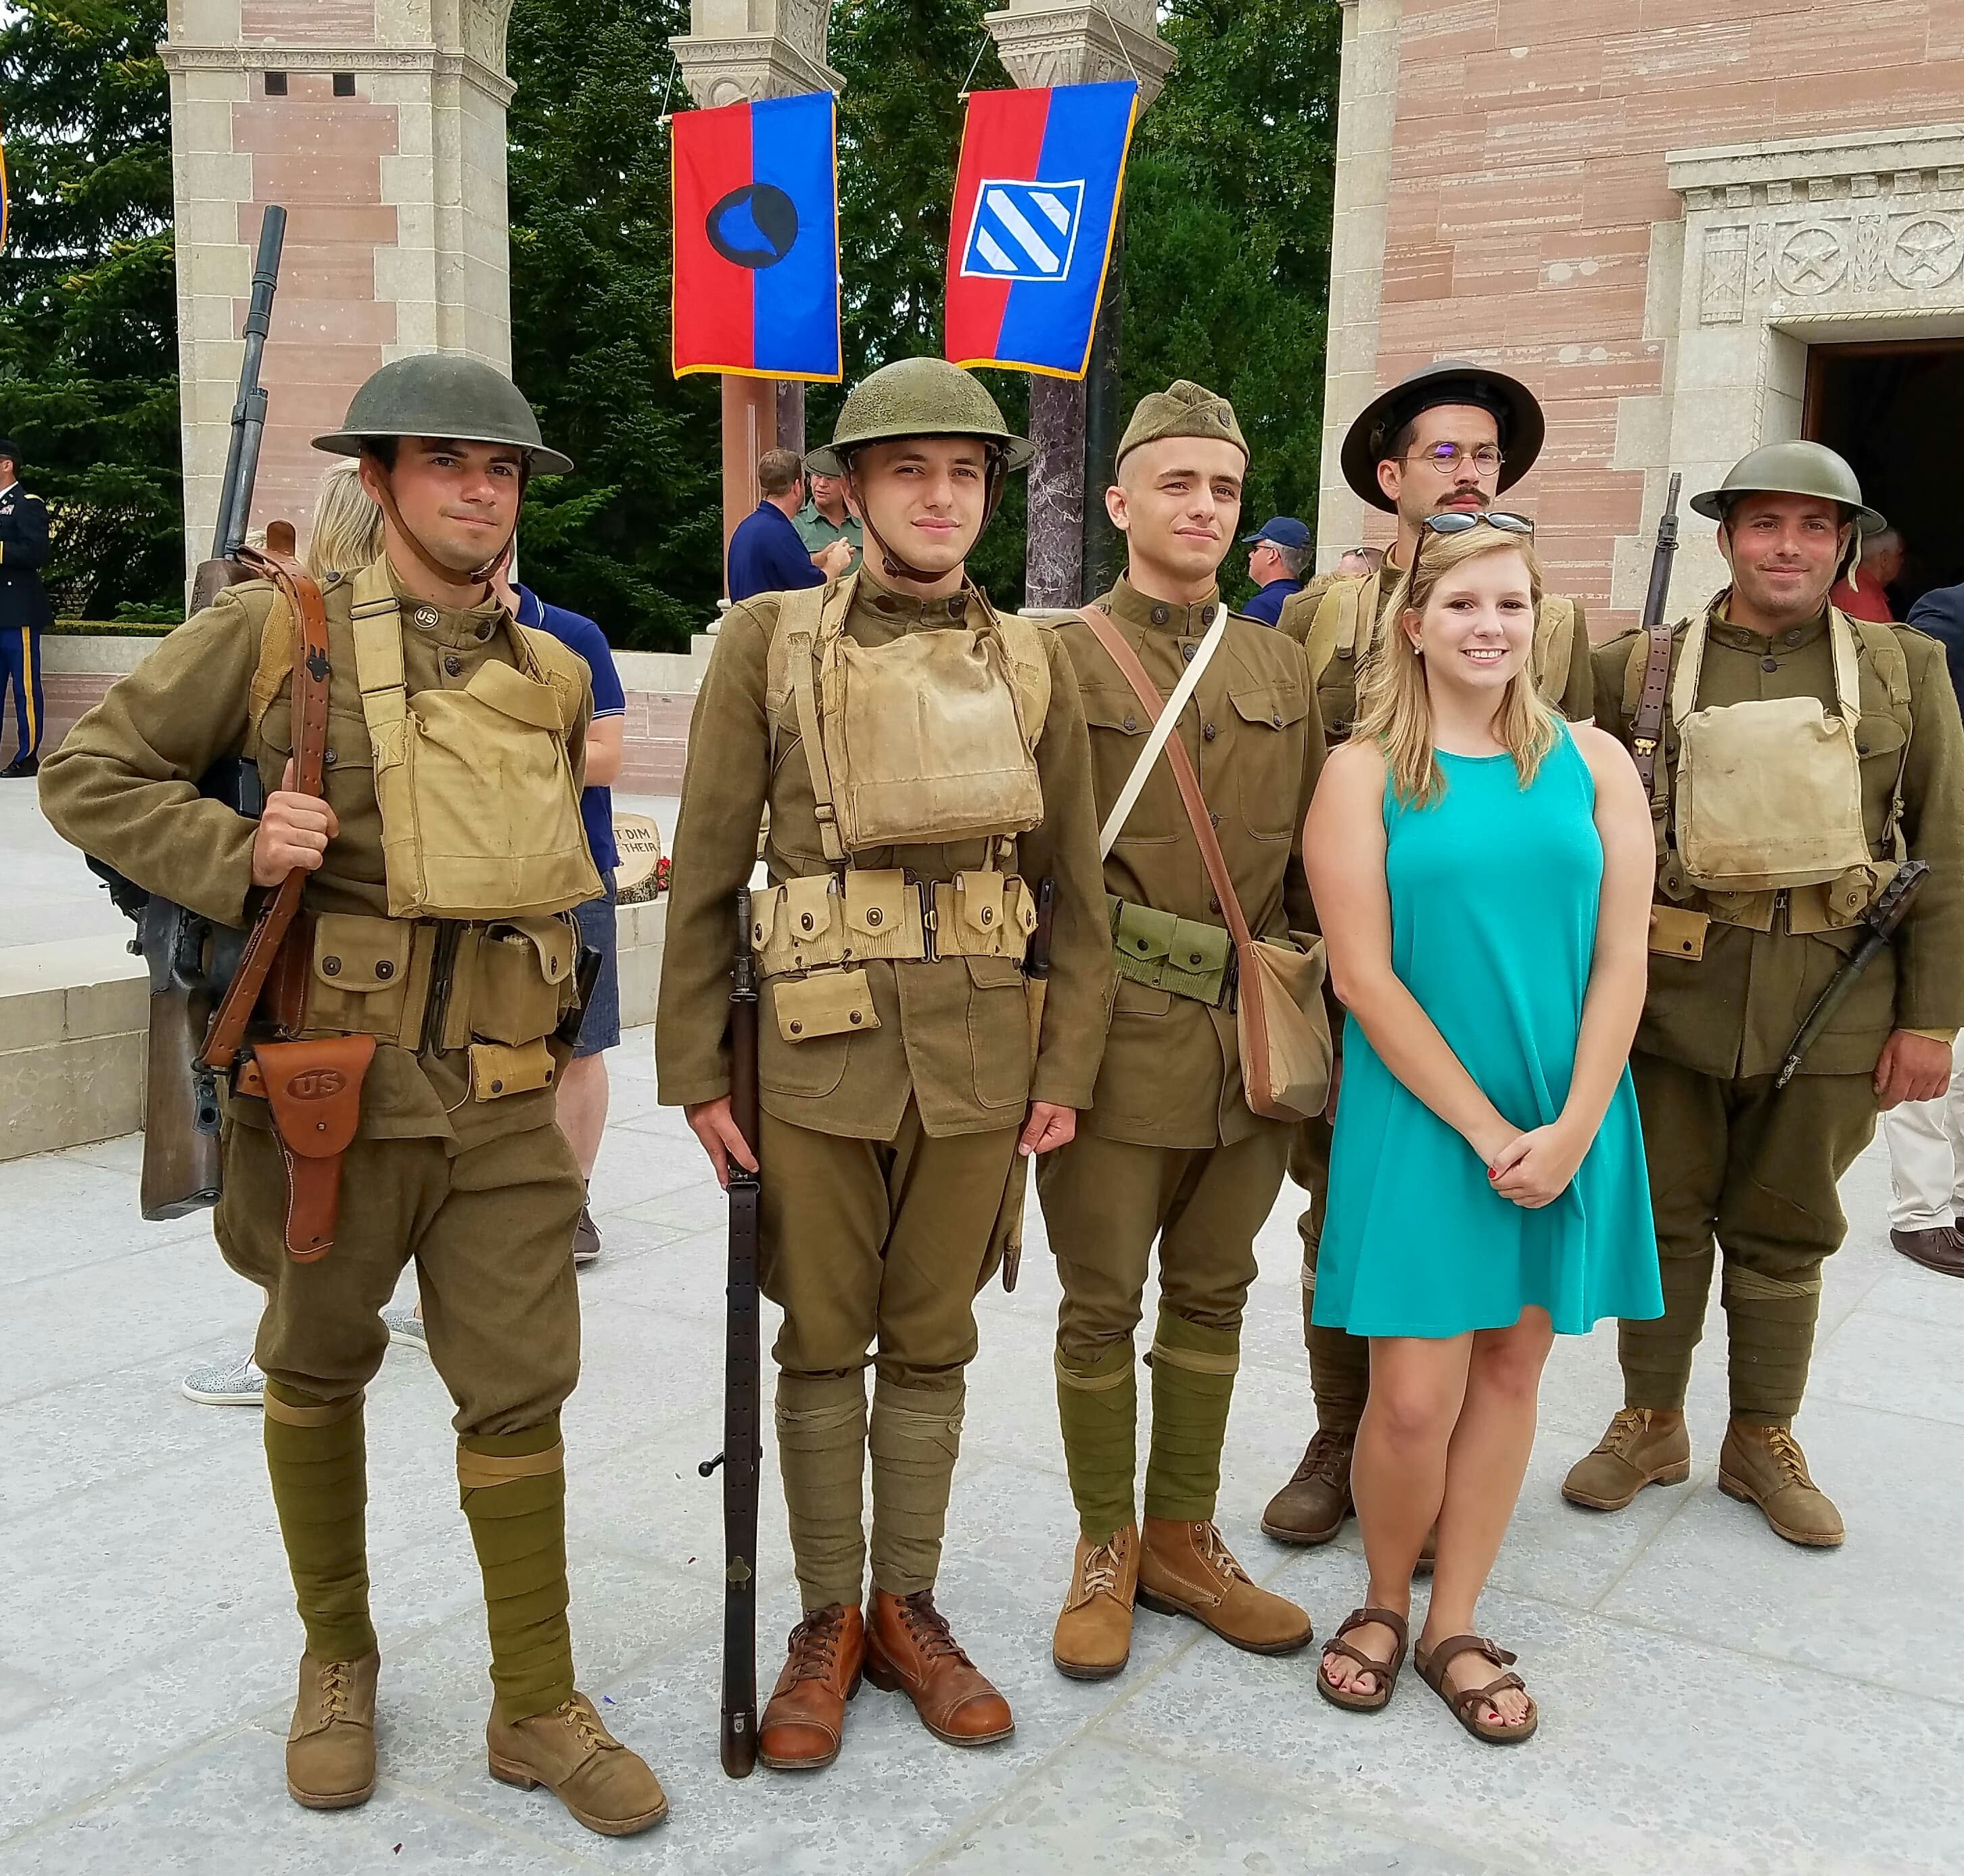 Brooklyn, with Doughboy re-enactors dressed in ww1 attire